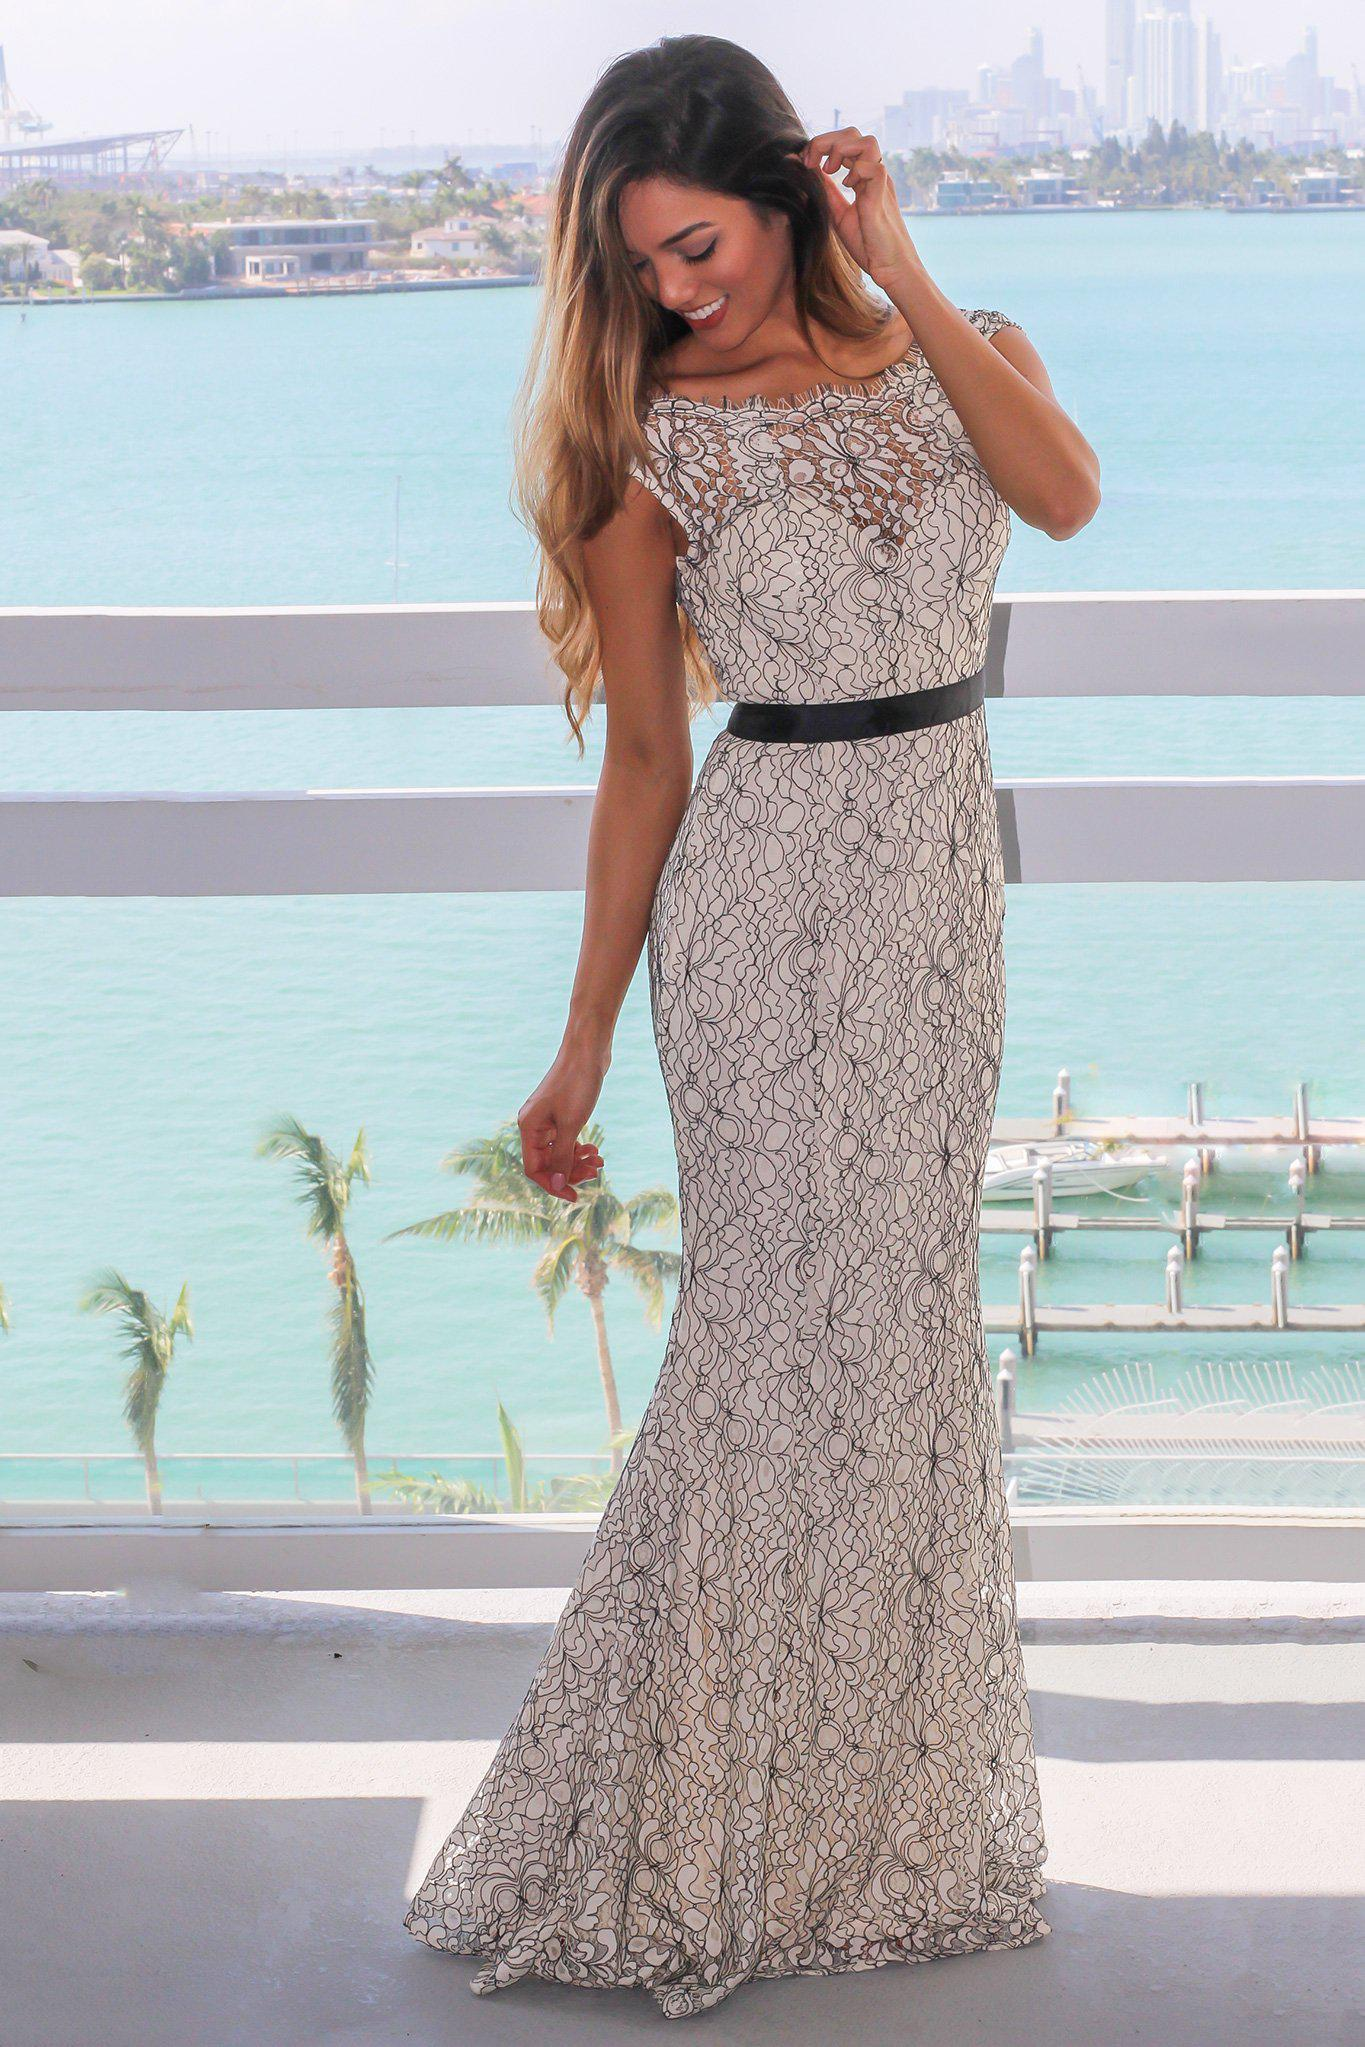 e223f8a0ac7 Ivory and Black Lace Maxi Dress